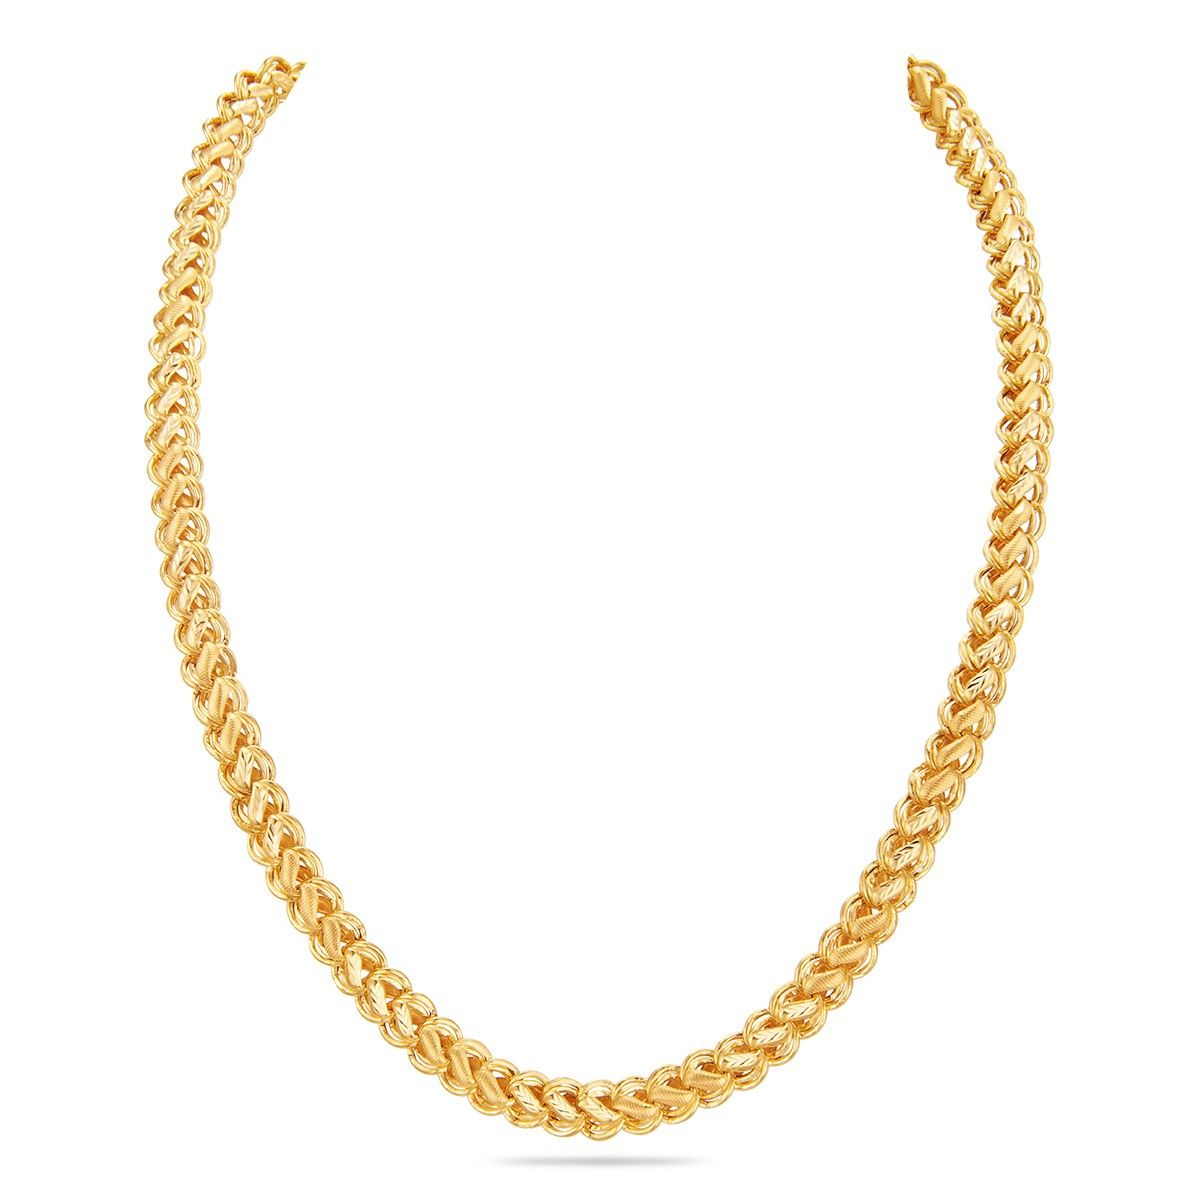 Gold Chains For Men By Thangamayil